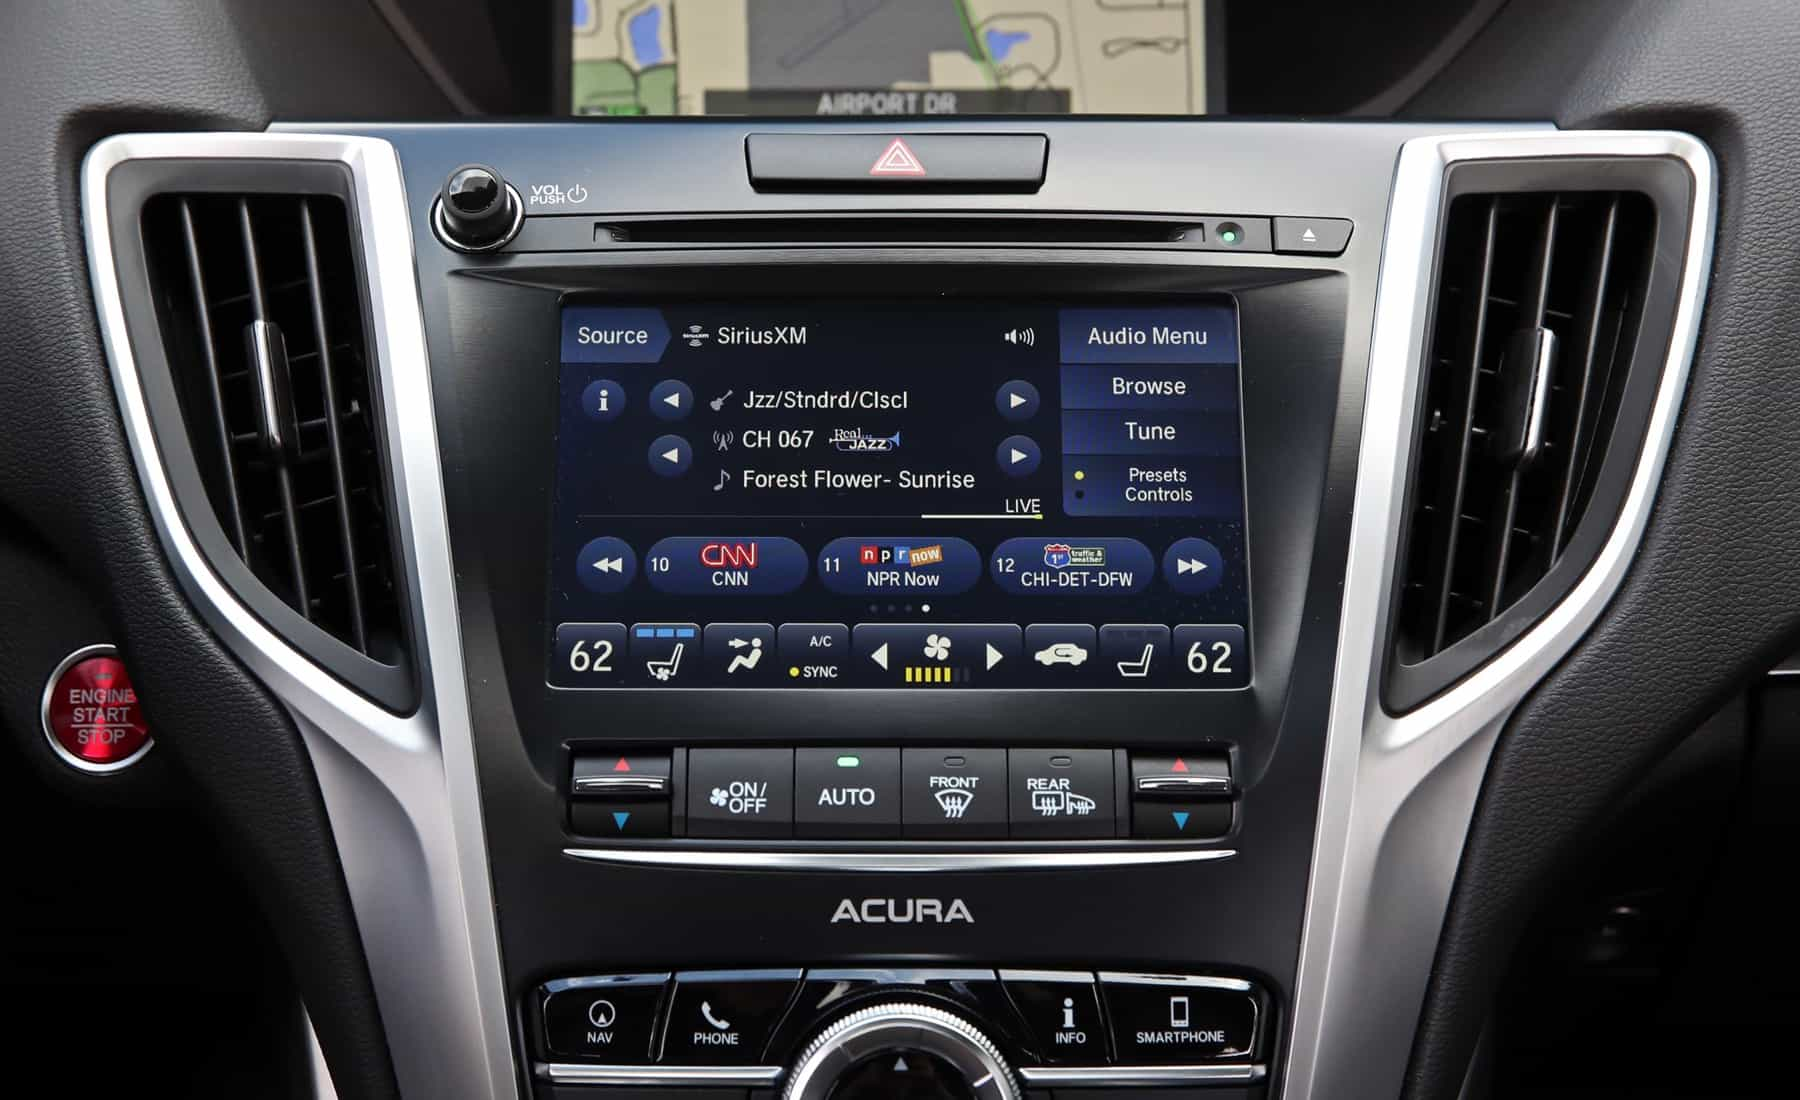 2018 Acura TLX Interior View Center Headunit Screen (View 20 of 46)